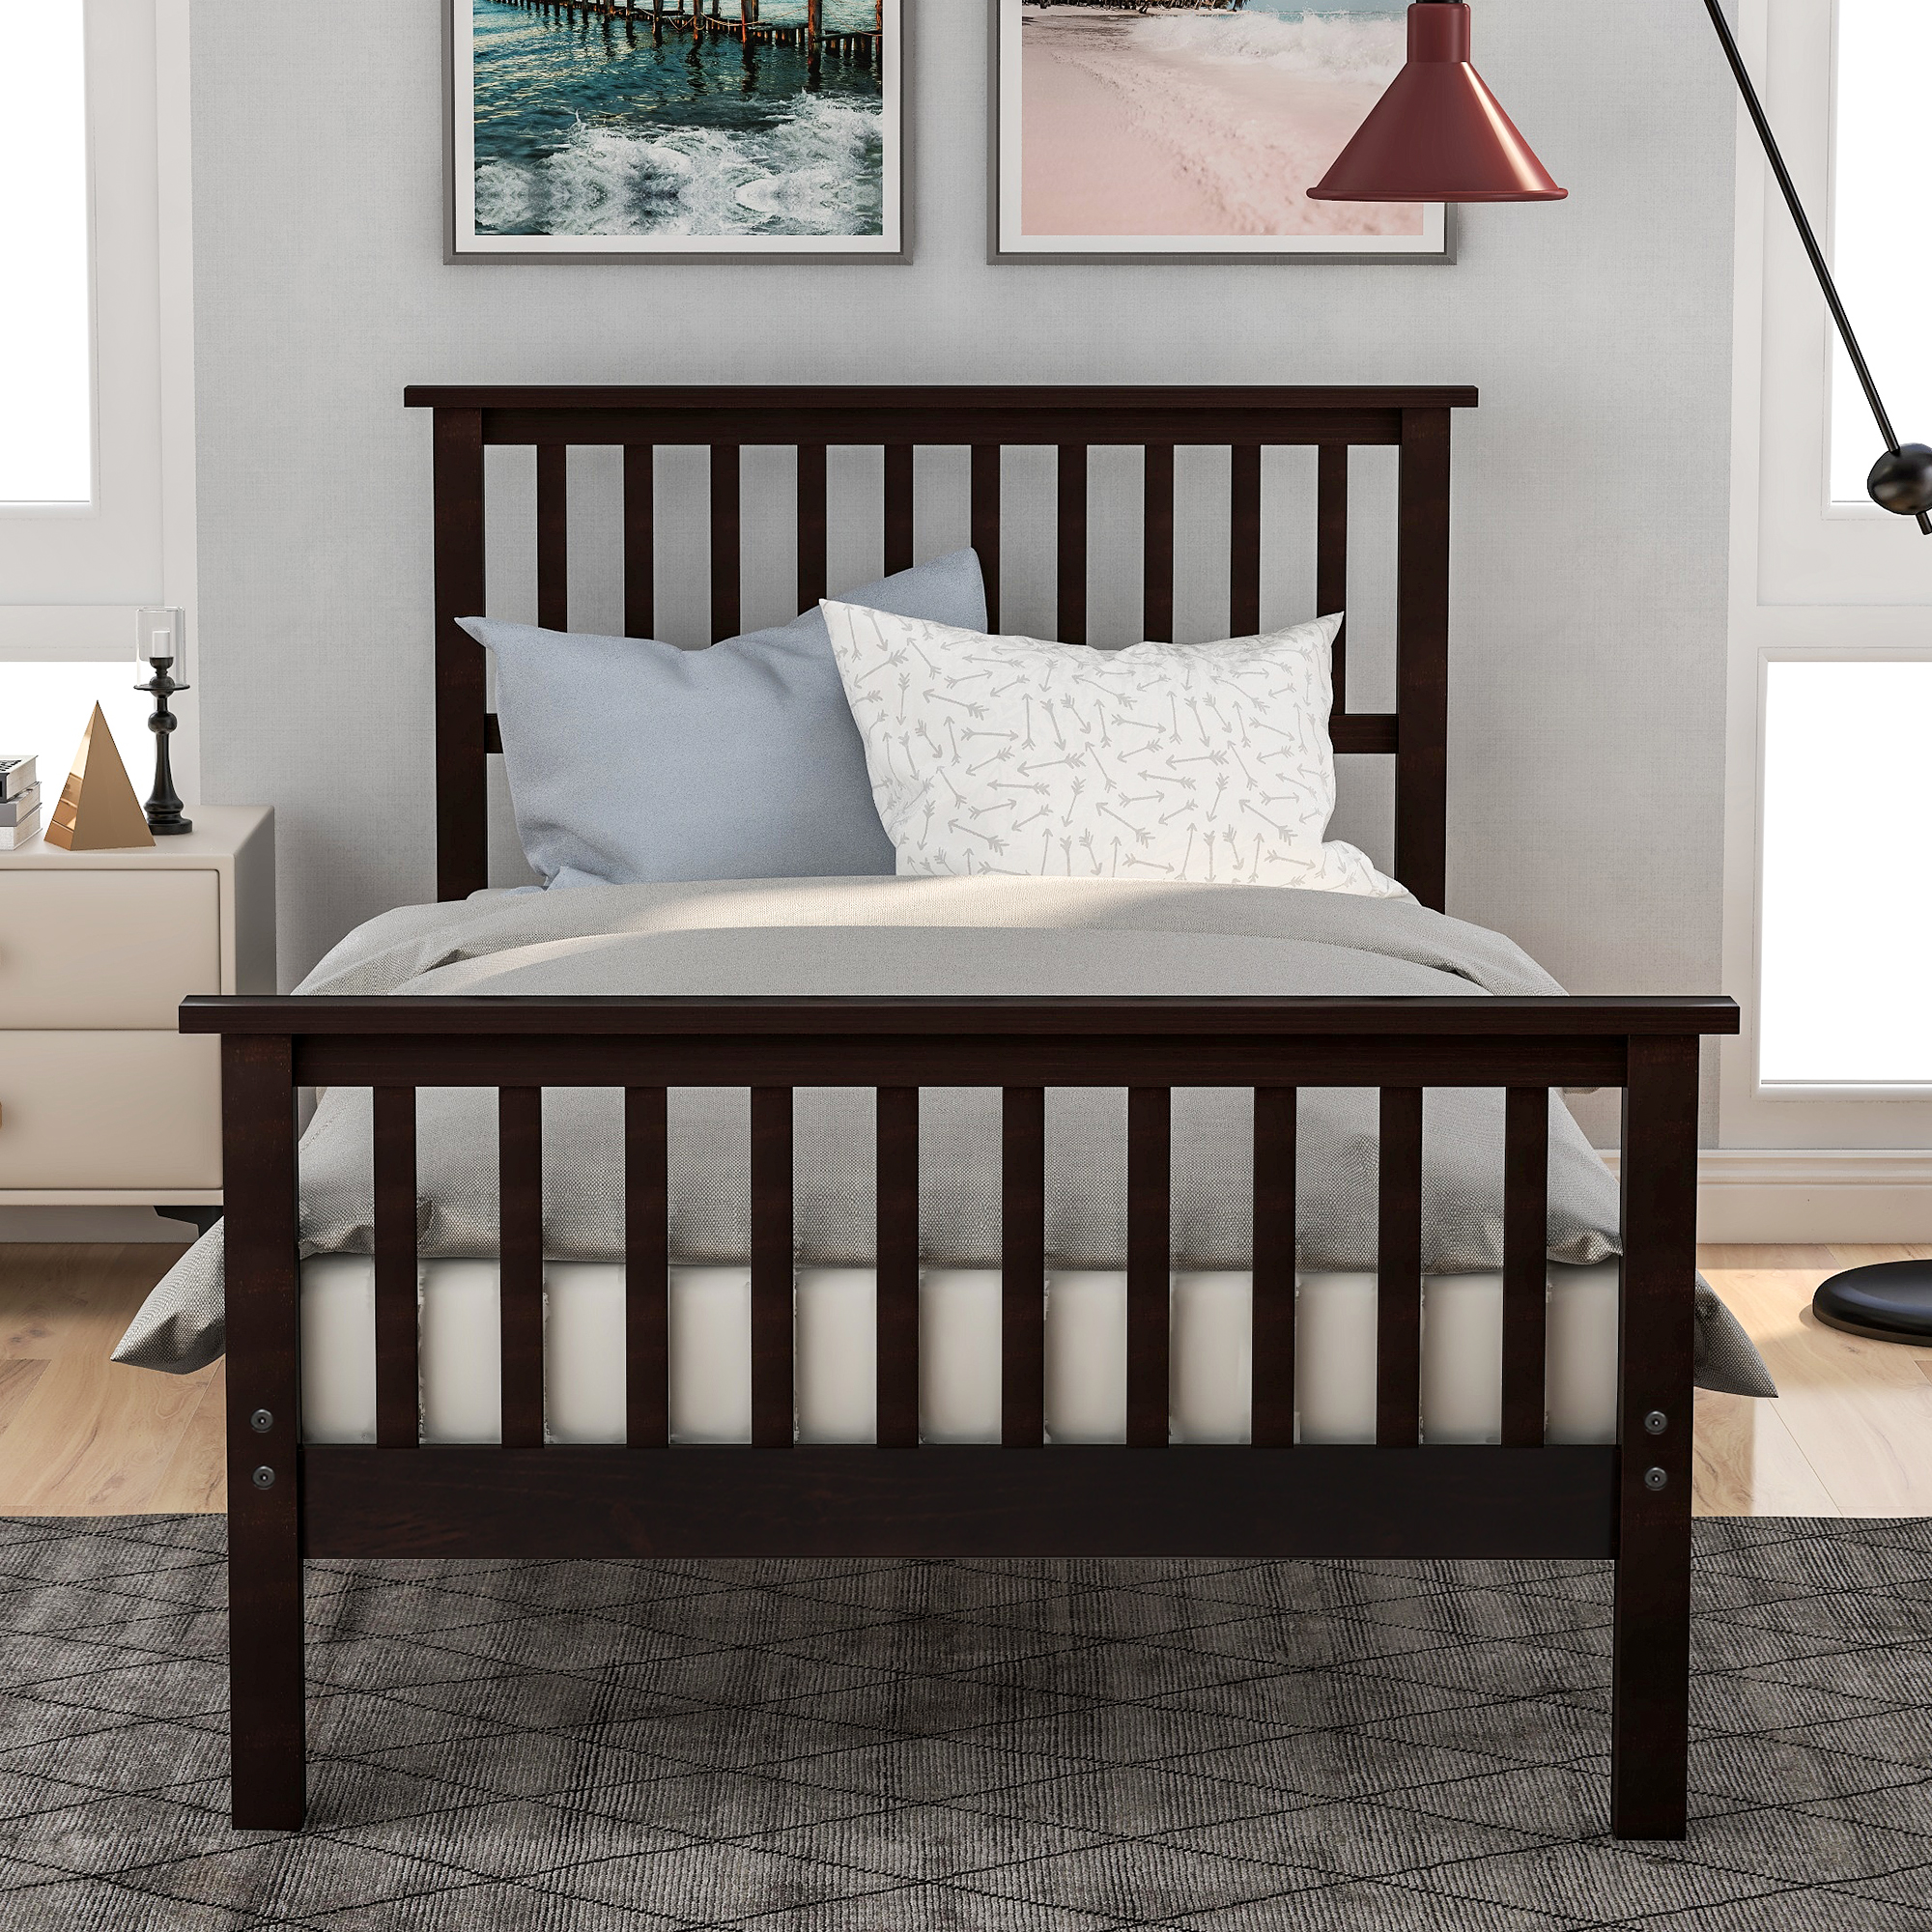 Twin Bed Frames for Kids, URHOMEPRO Heavy Duty Wood Twin Platform